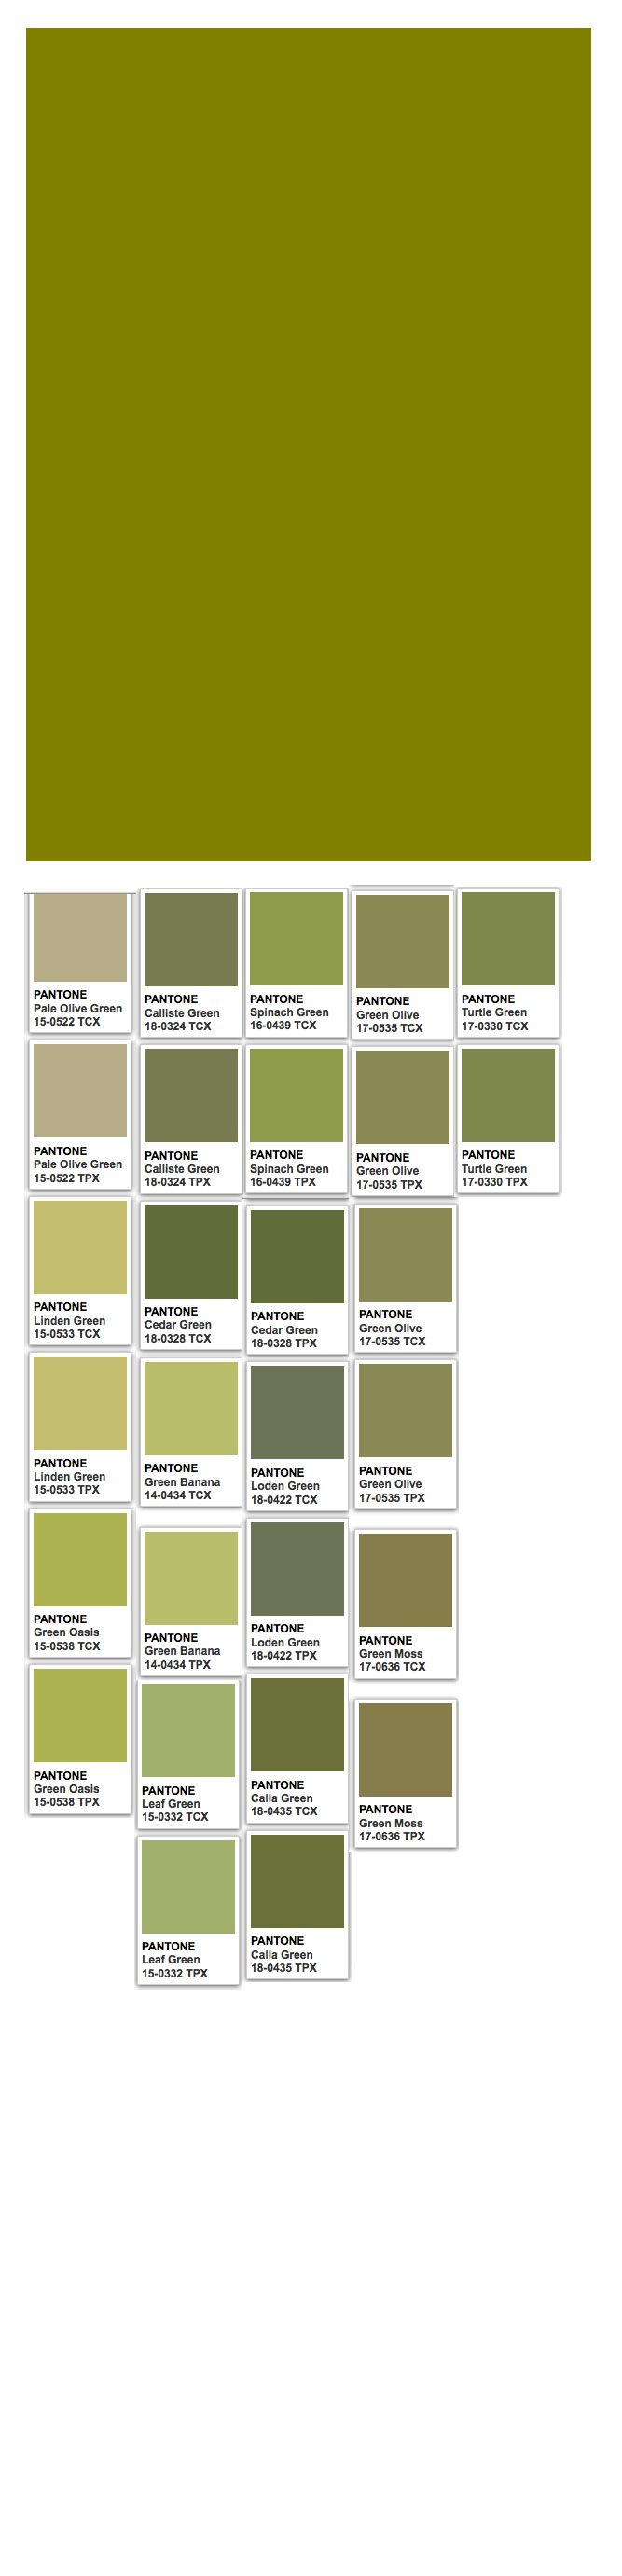 Olive (web) and Pantone colors | Color Thesaurus, Color Wheels and ...